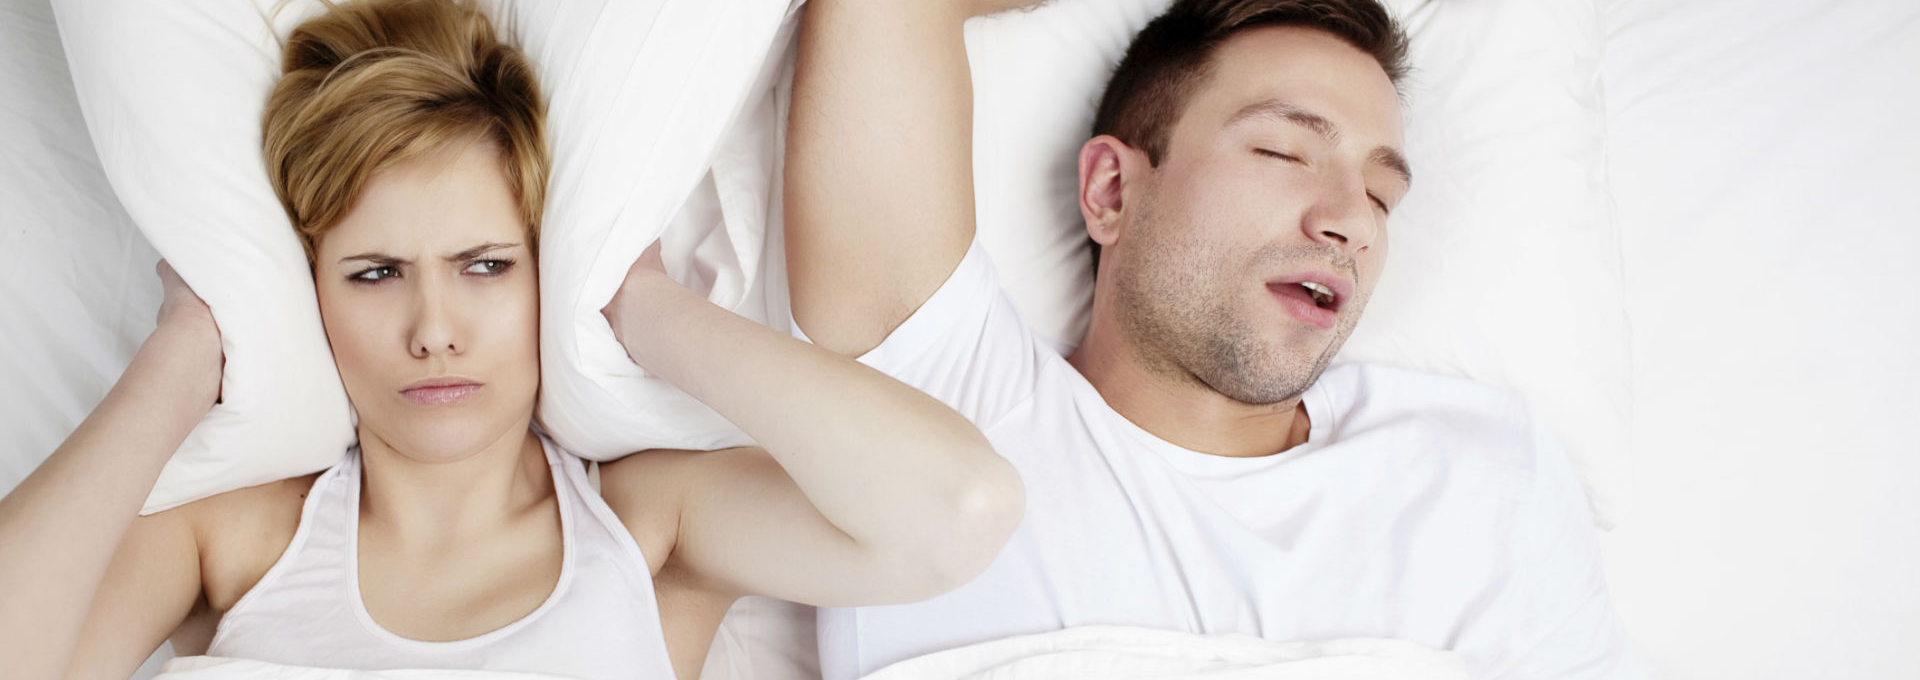 sleep apnea - holistic dentist Sydney